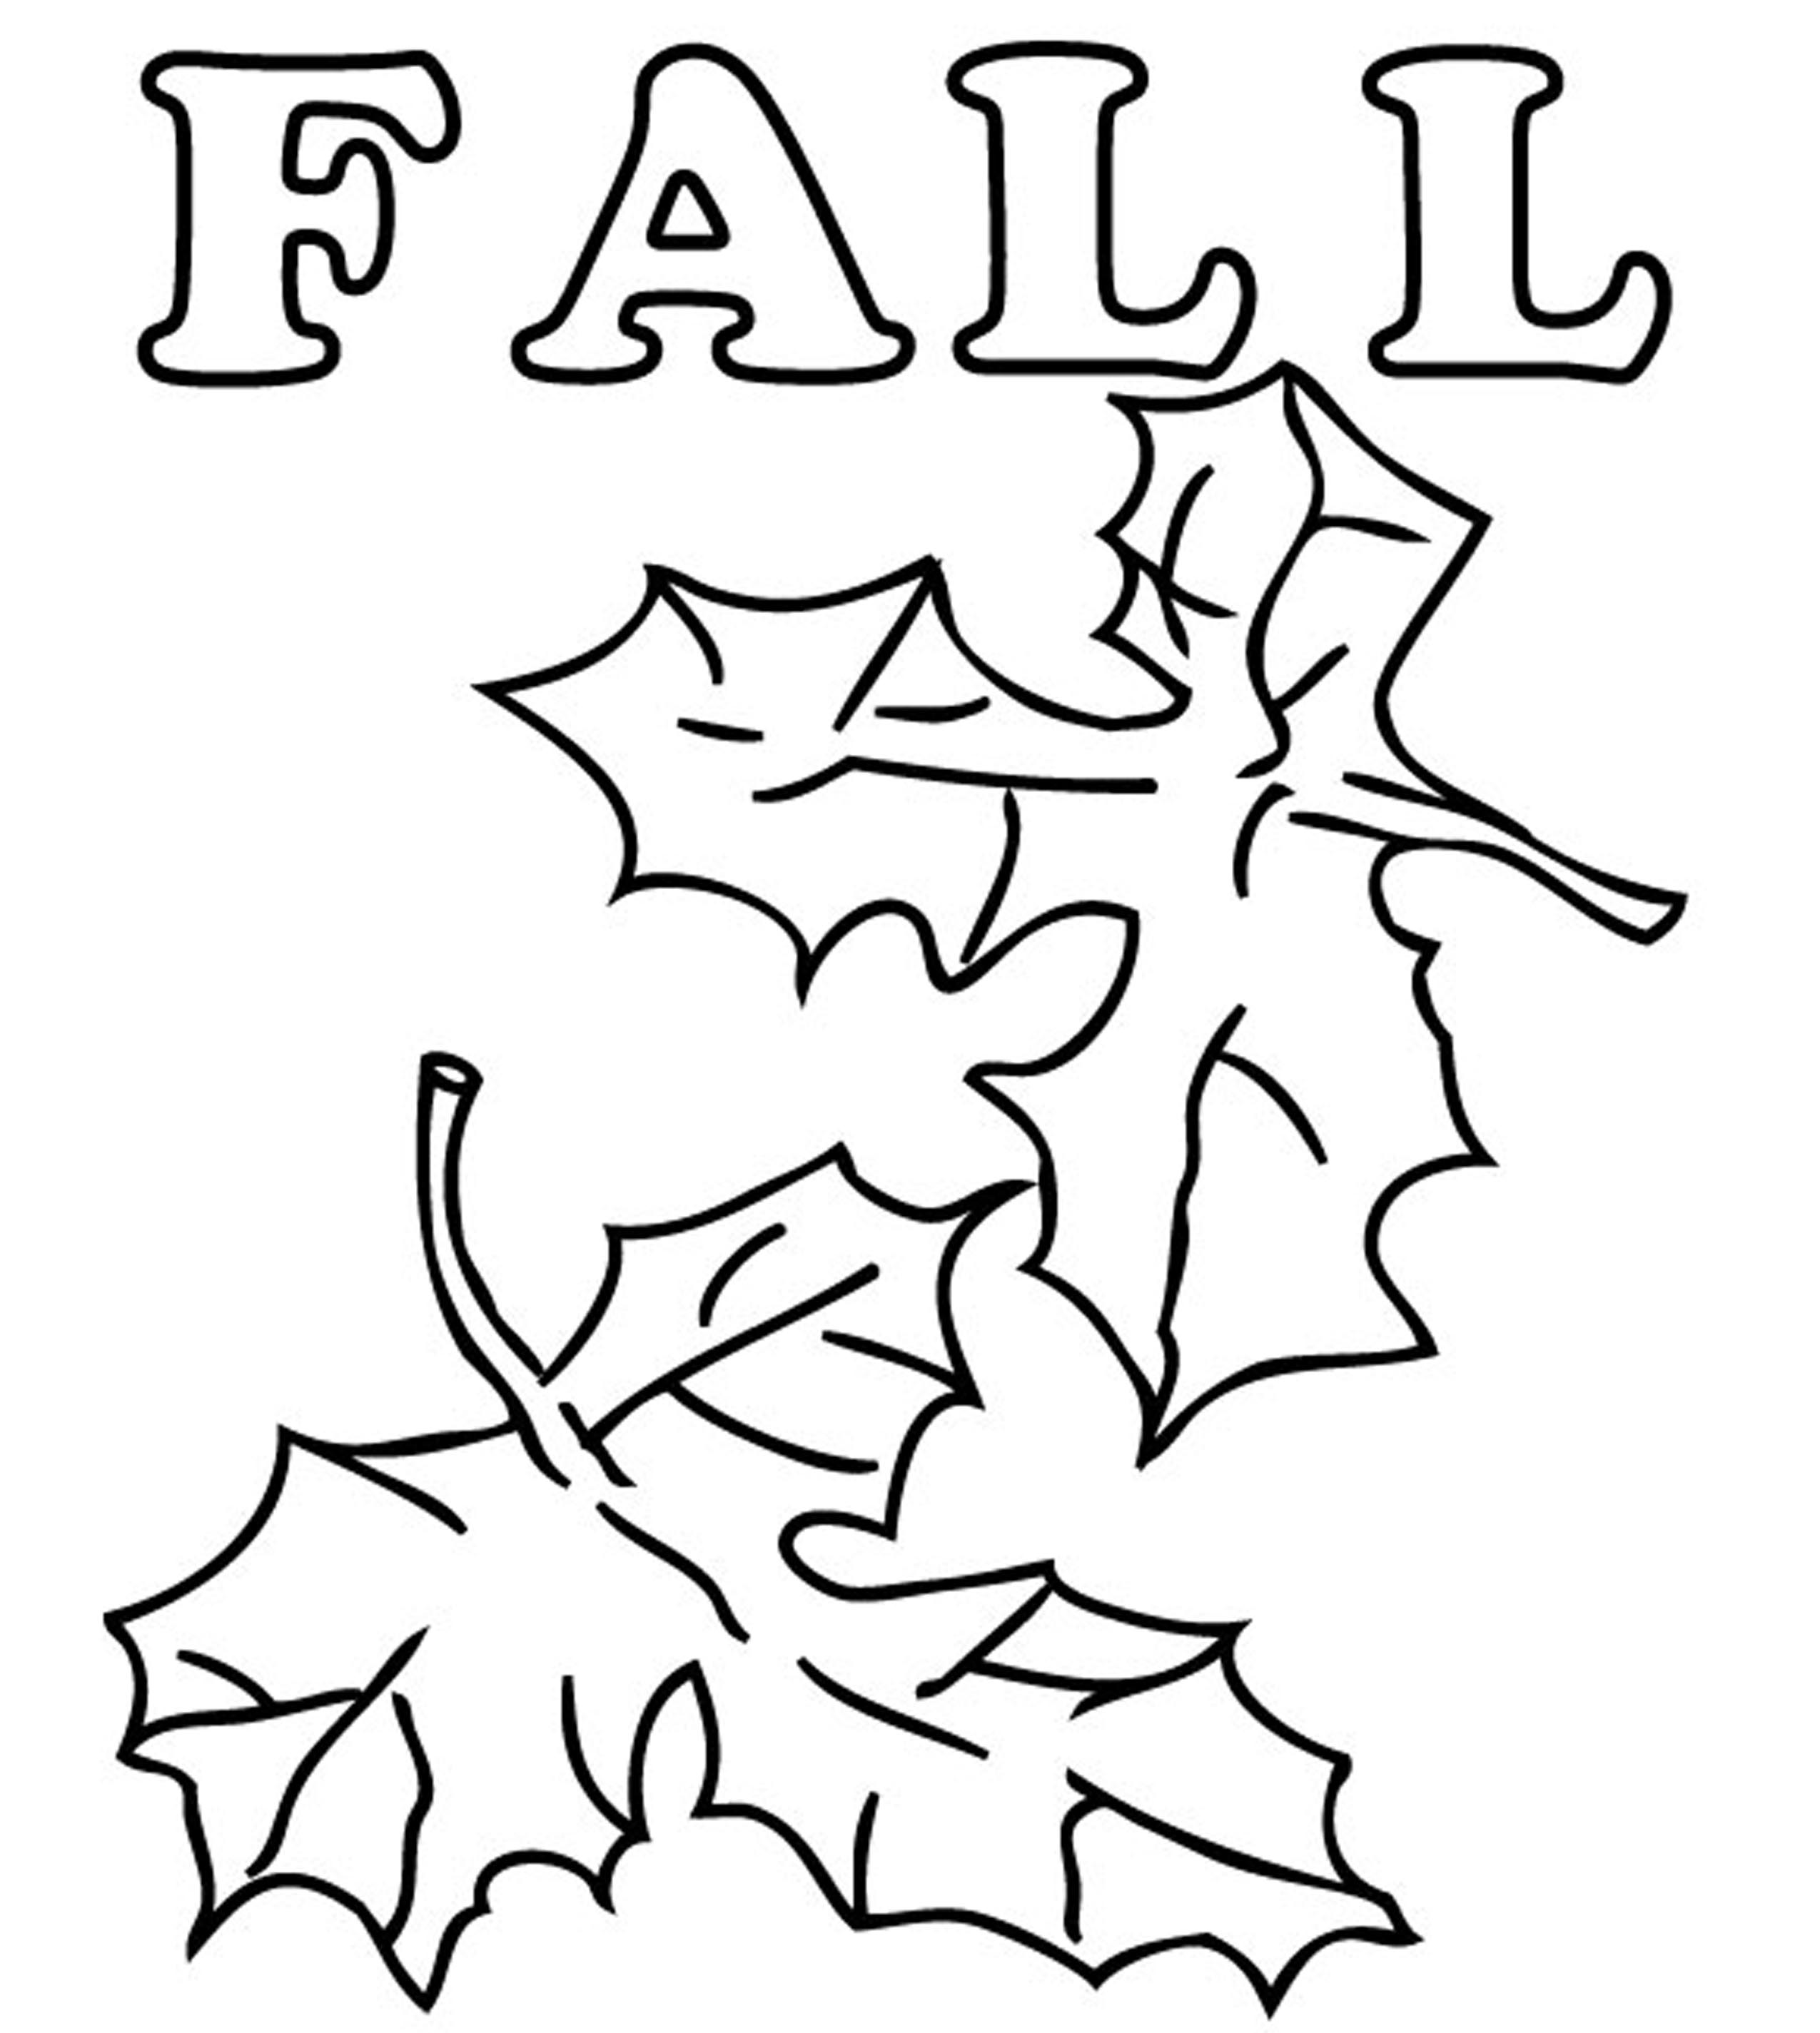 2550x2849 Genuine Fall Leaves Coloring Sheets Perspectiv